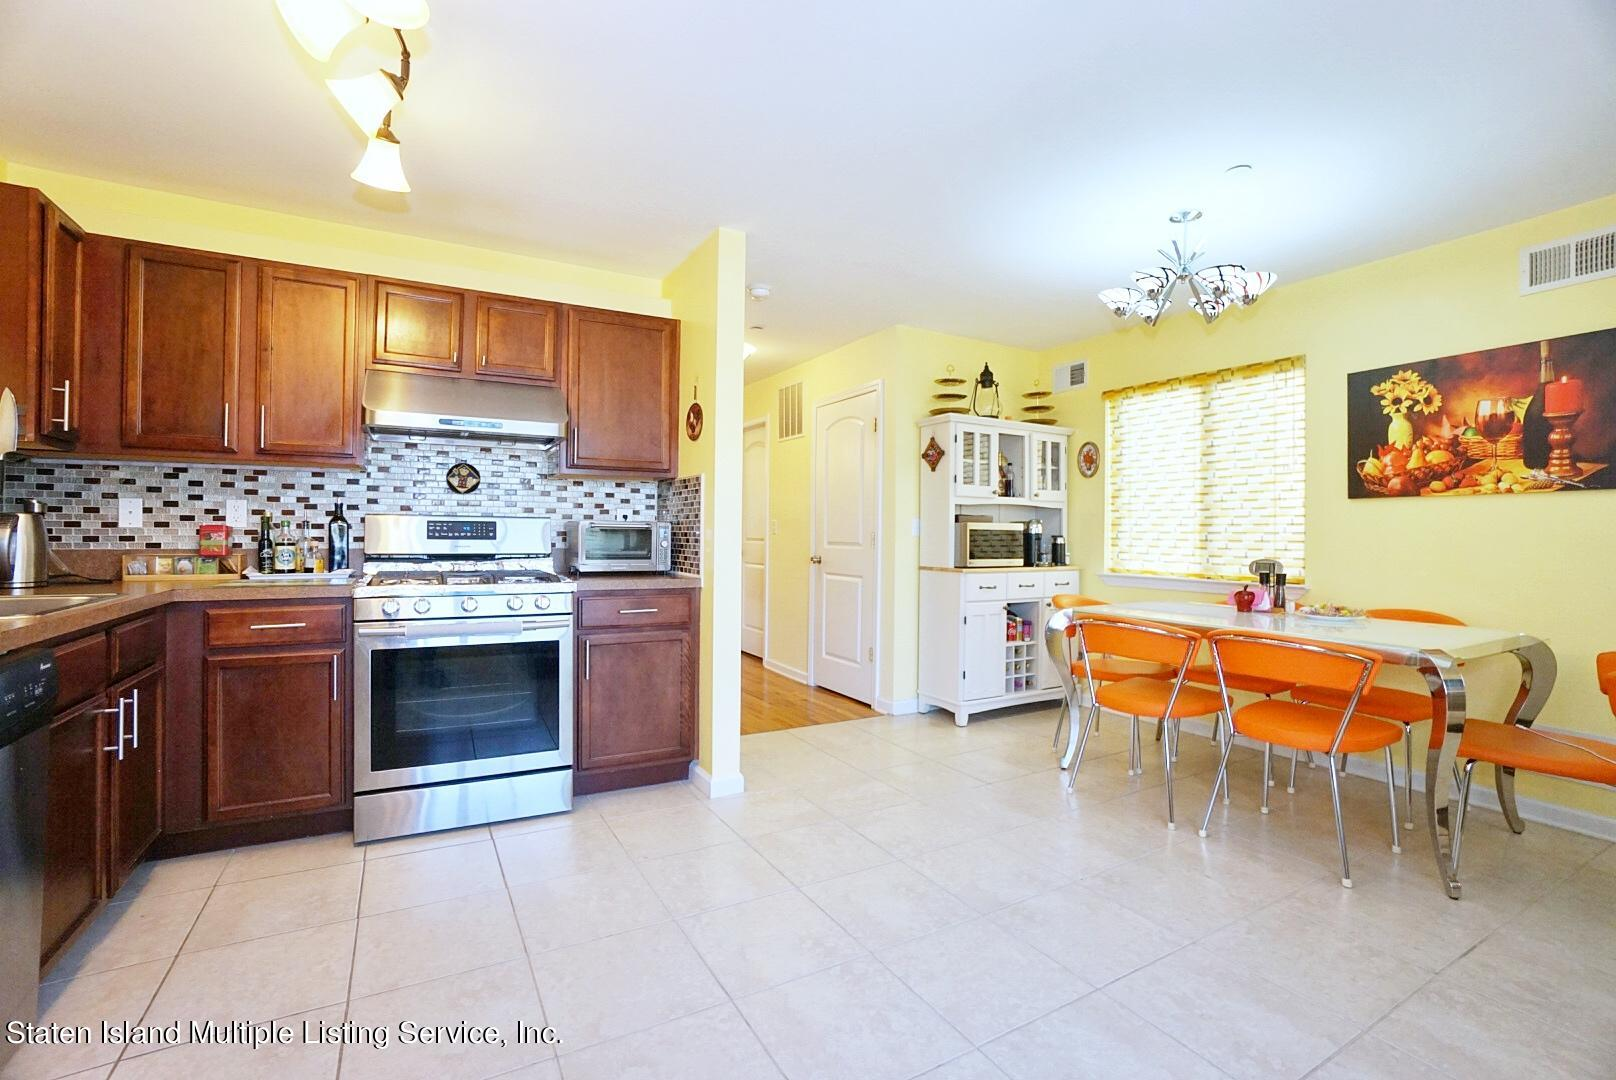 Single Family - Detached 171 Benziger Avenue  Staten Island, NY 10301, MLS-1145235-14